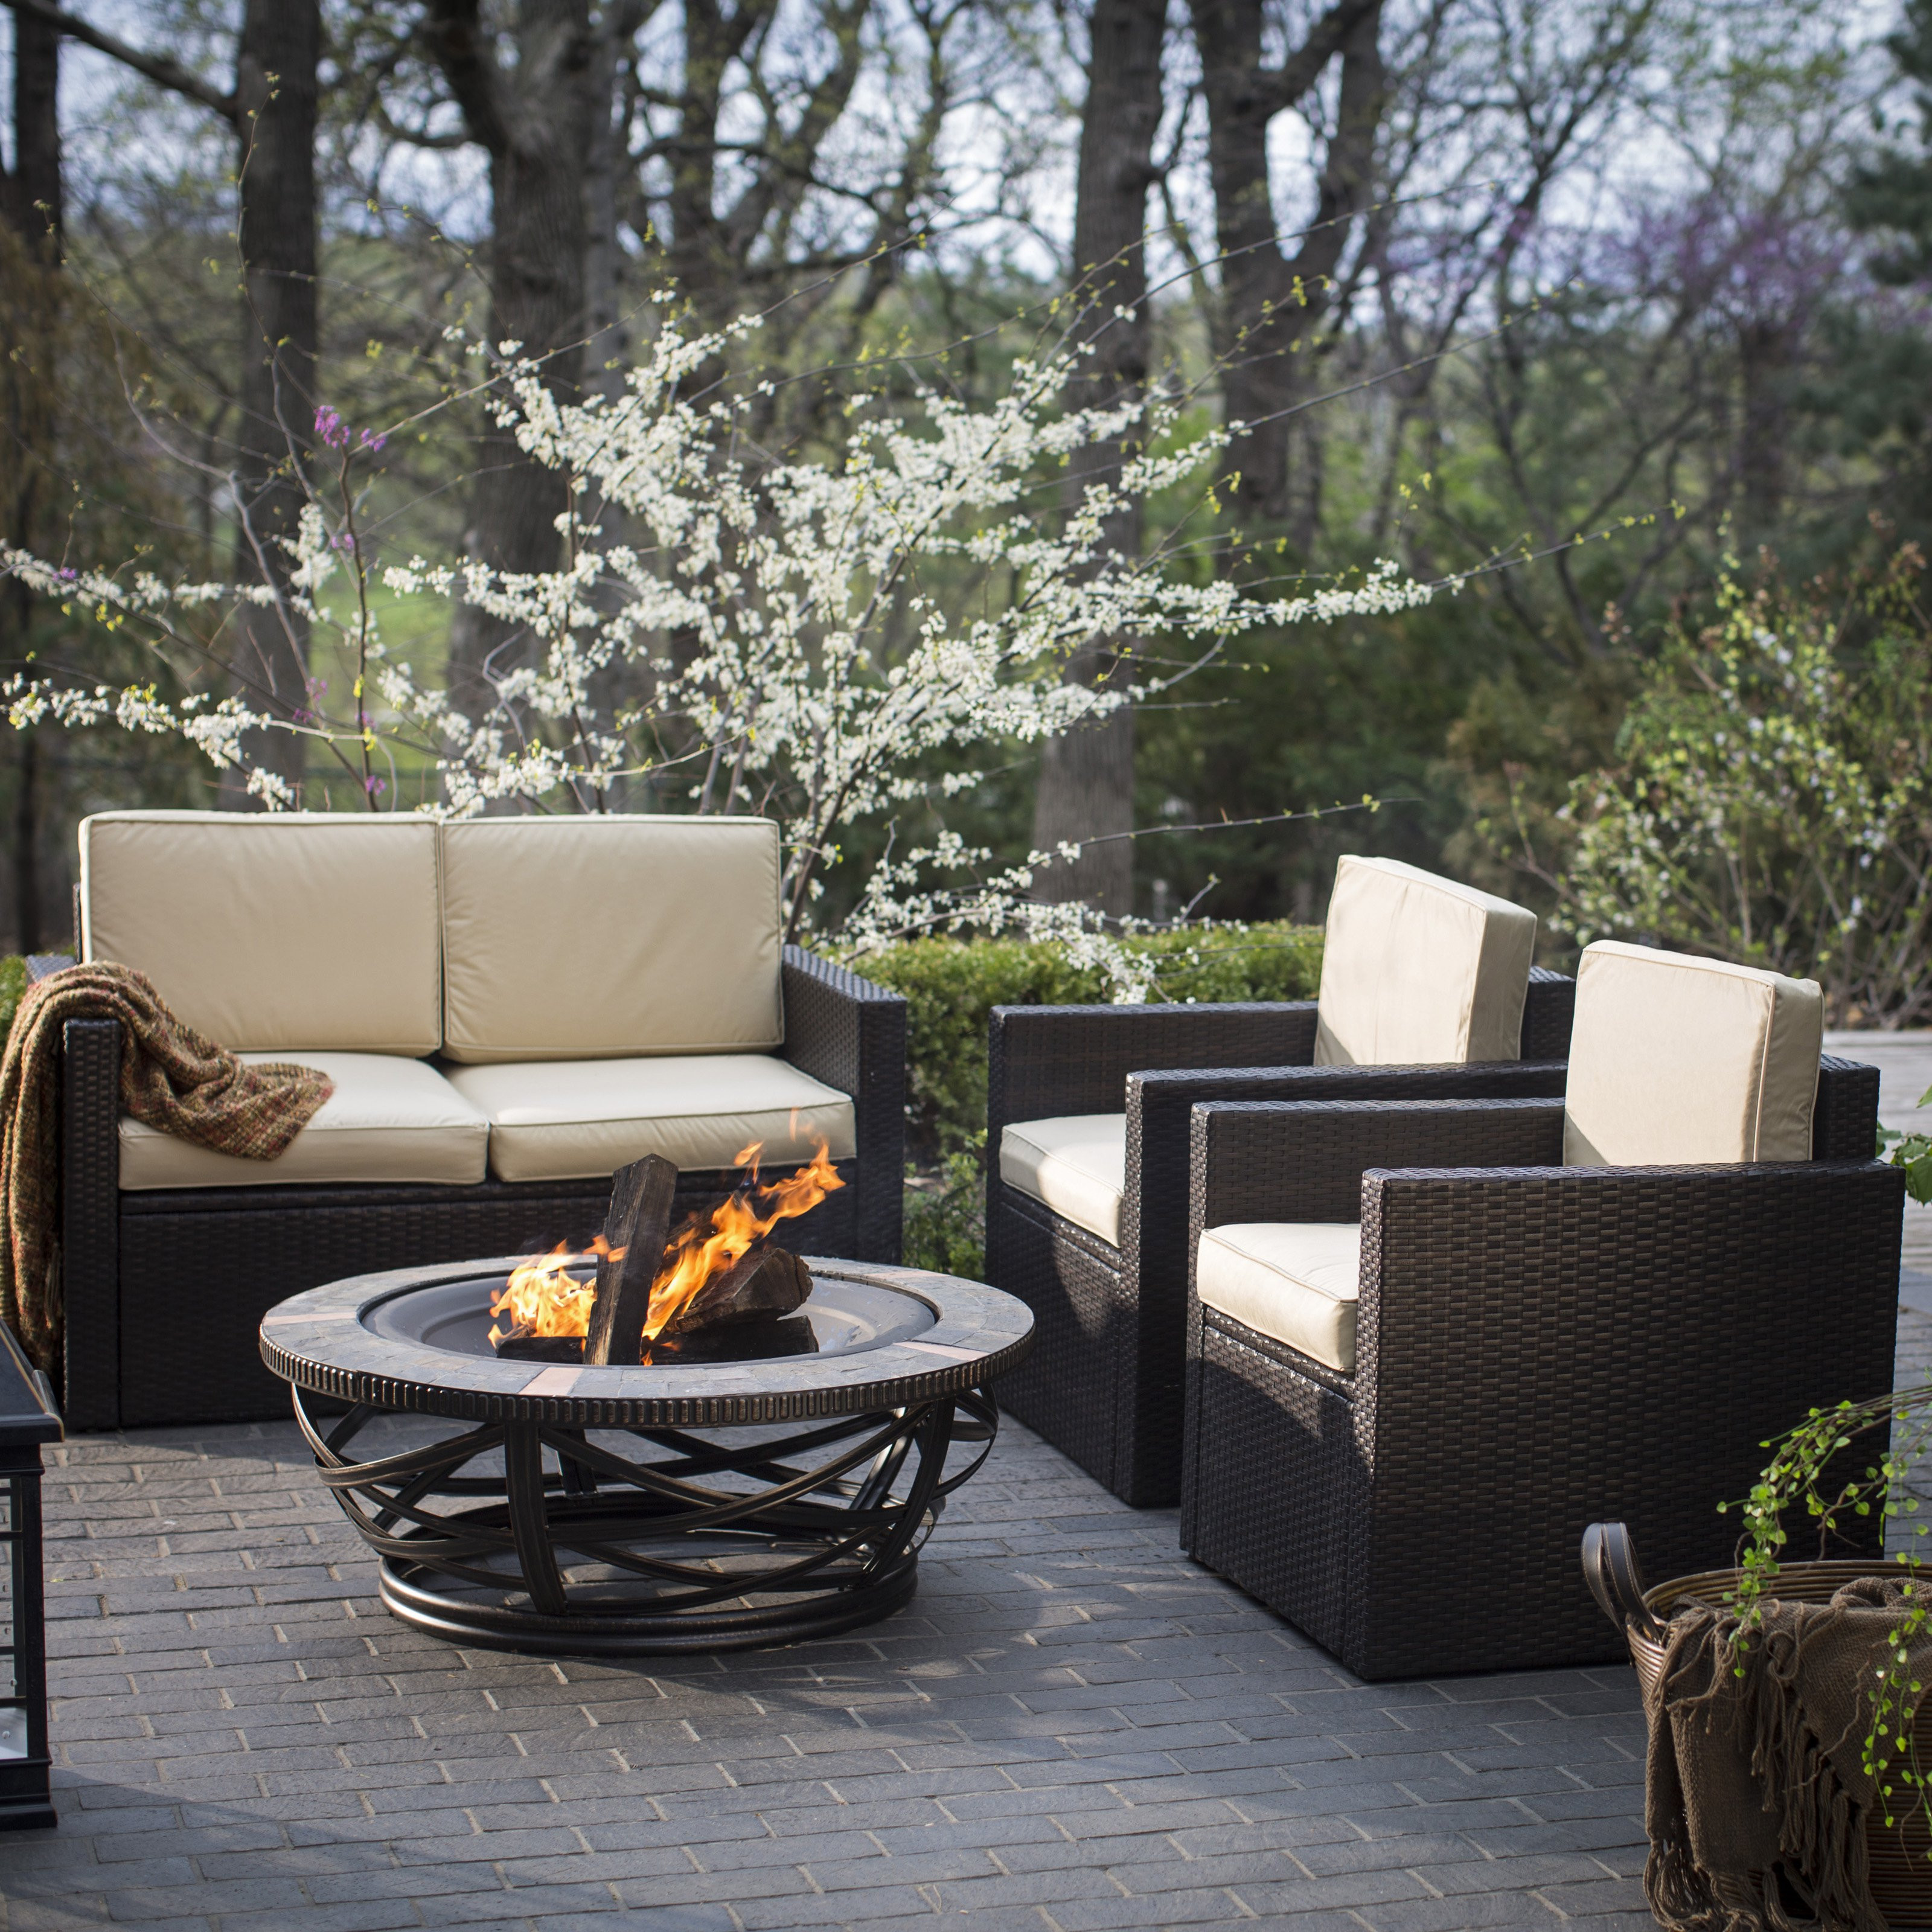 Best ideas about Outdoor Fire Pit Sets . Save or Pin Palm Harbor Tile Fire Pit Chat Set Fire Pit Patio Sets Now.